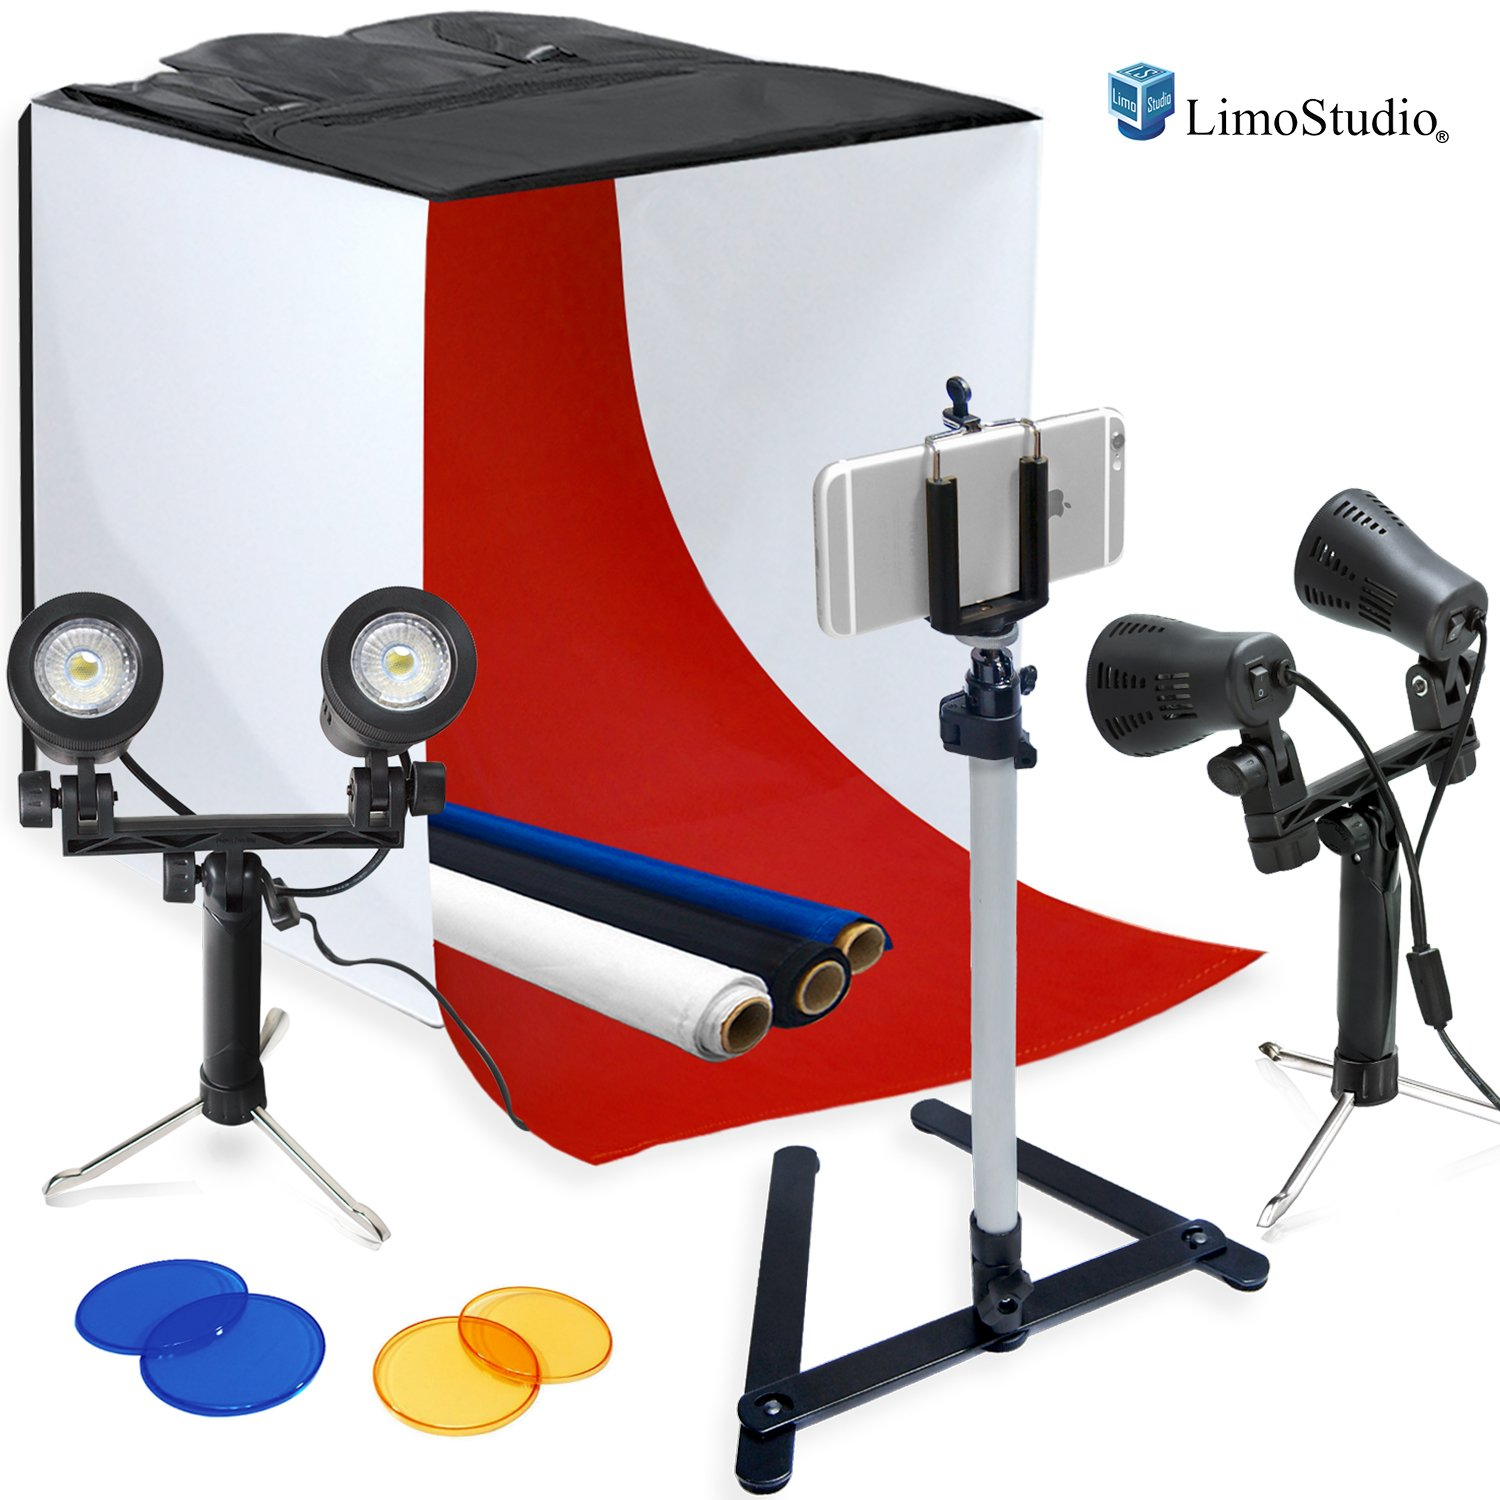 LimoStudio Photography Table Top Photo Light Tent Kit, 24'' Photo Light Box, Continous Lighting Kit, Camera Tripod & Cell Phone Holder AGG1069 by LimoStudio (Image #2)